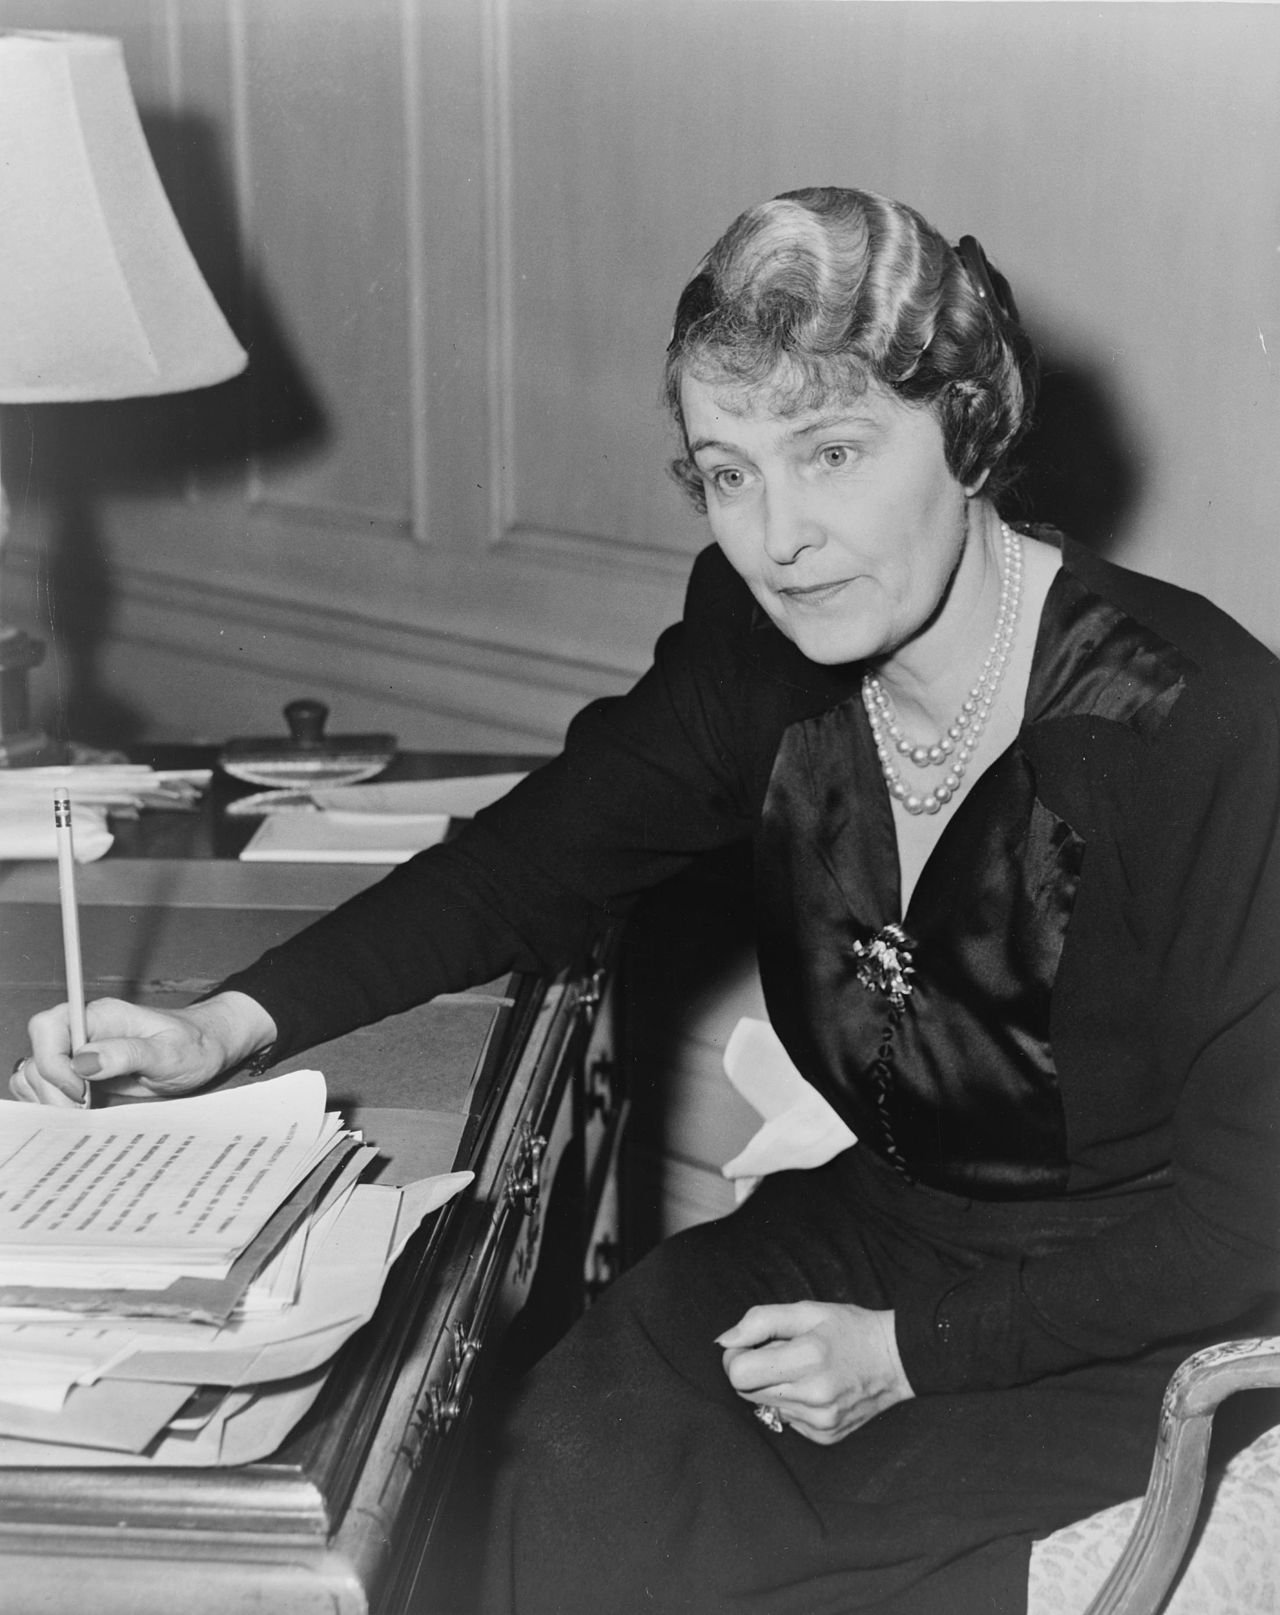 Marjorie Merriweather Post, heiress and owner of the Post cereal company, built the Hillwood Estate after leaving Tregaron.